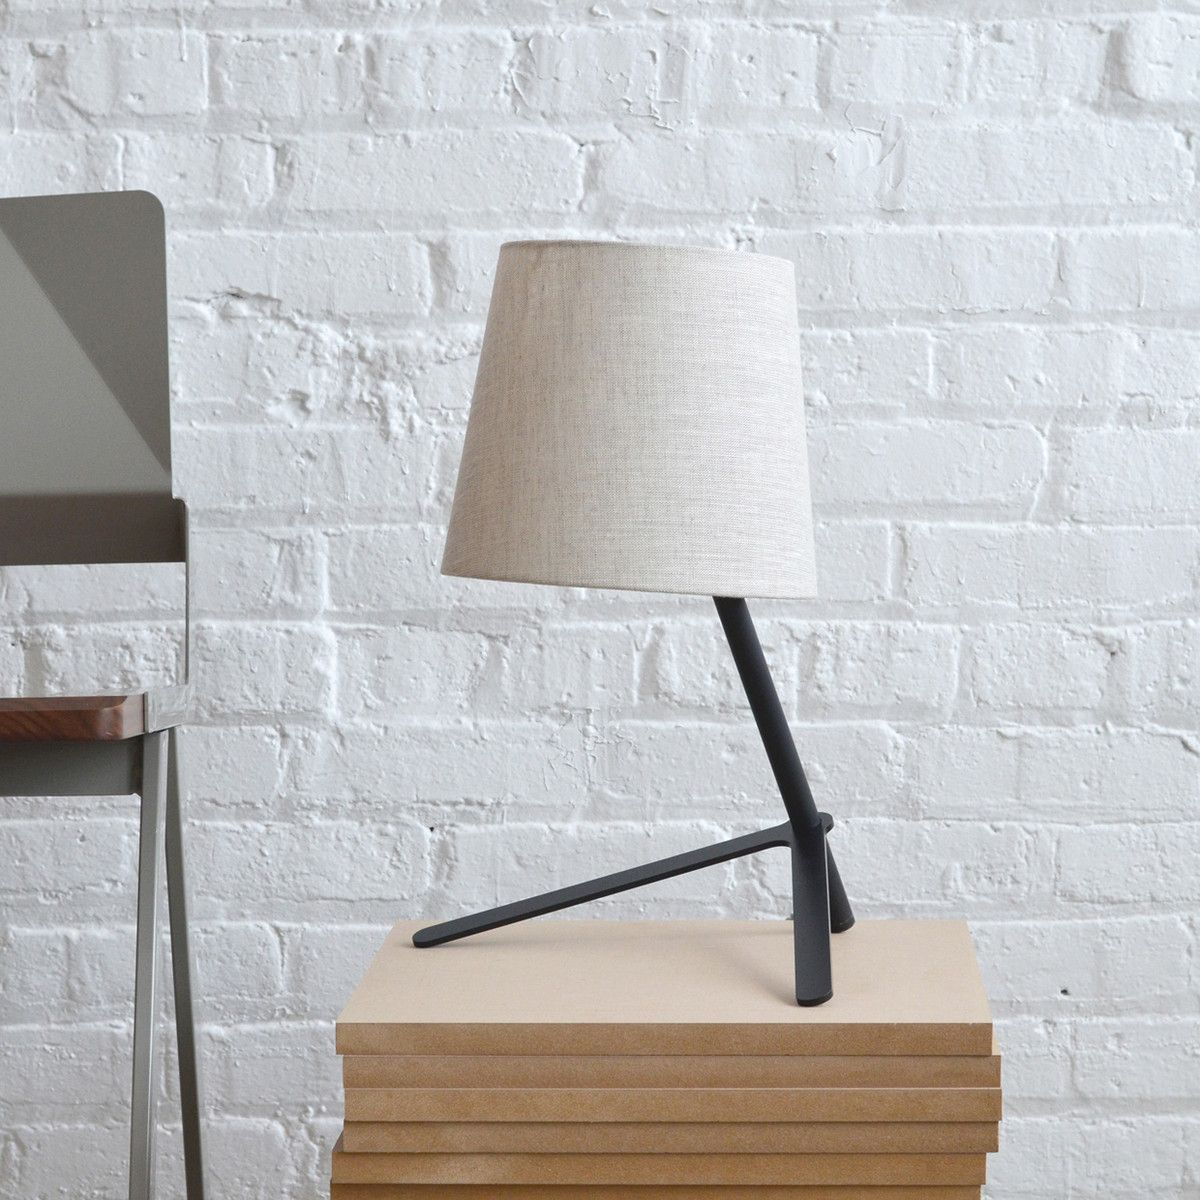 Tokyo Lamp By Misewell Lamp Home Table Lamp